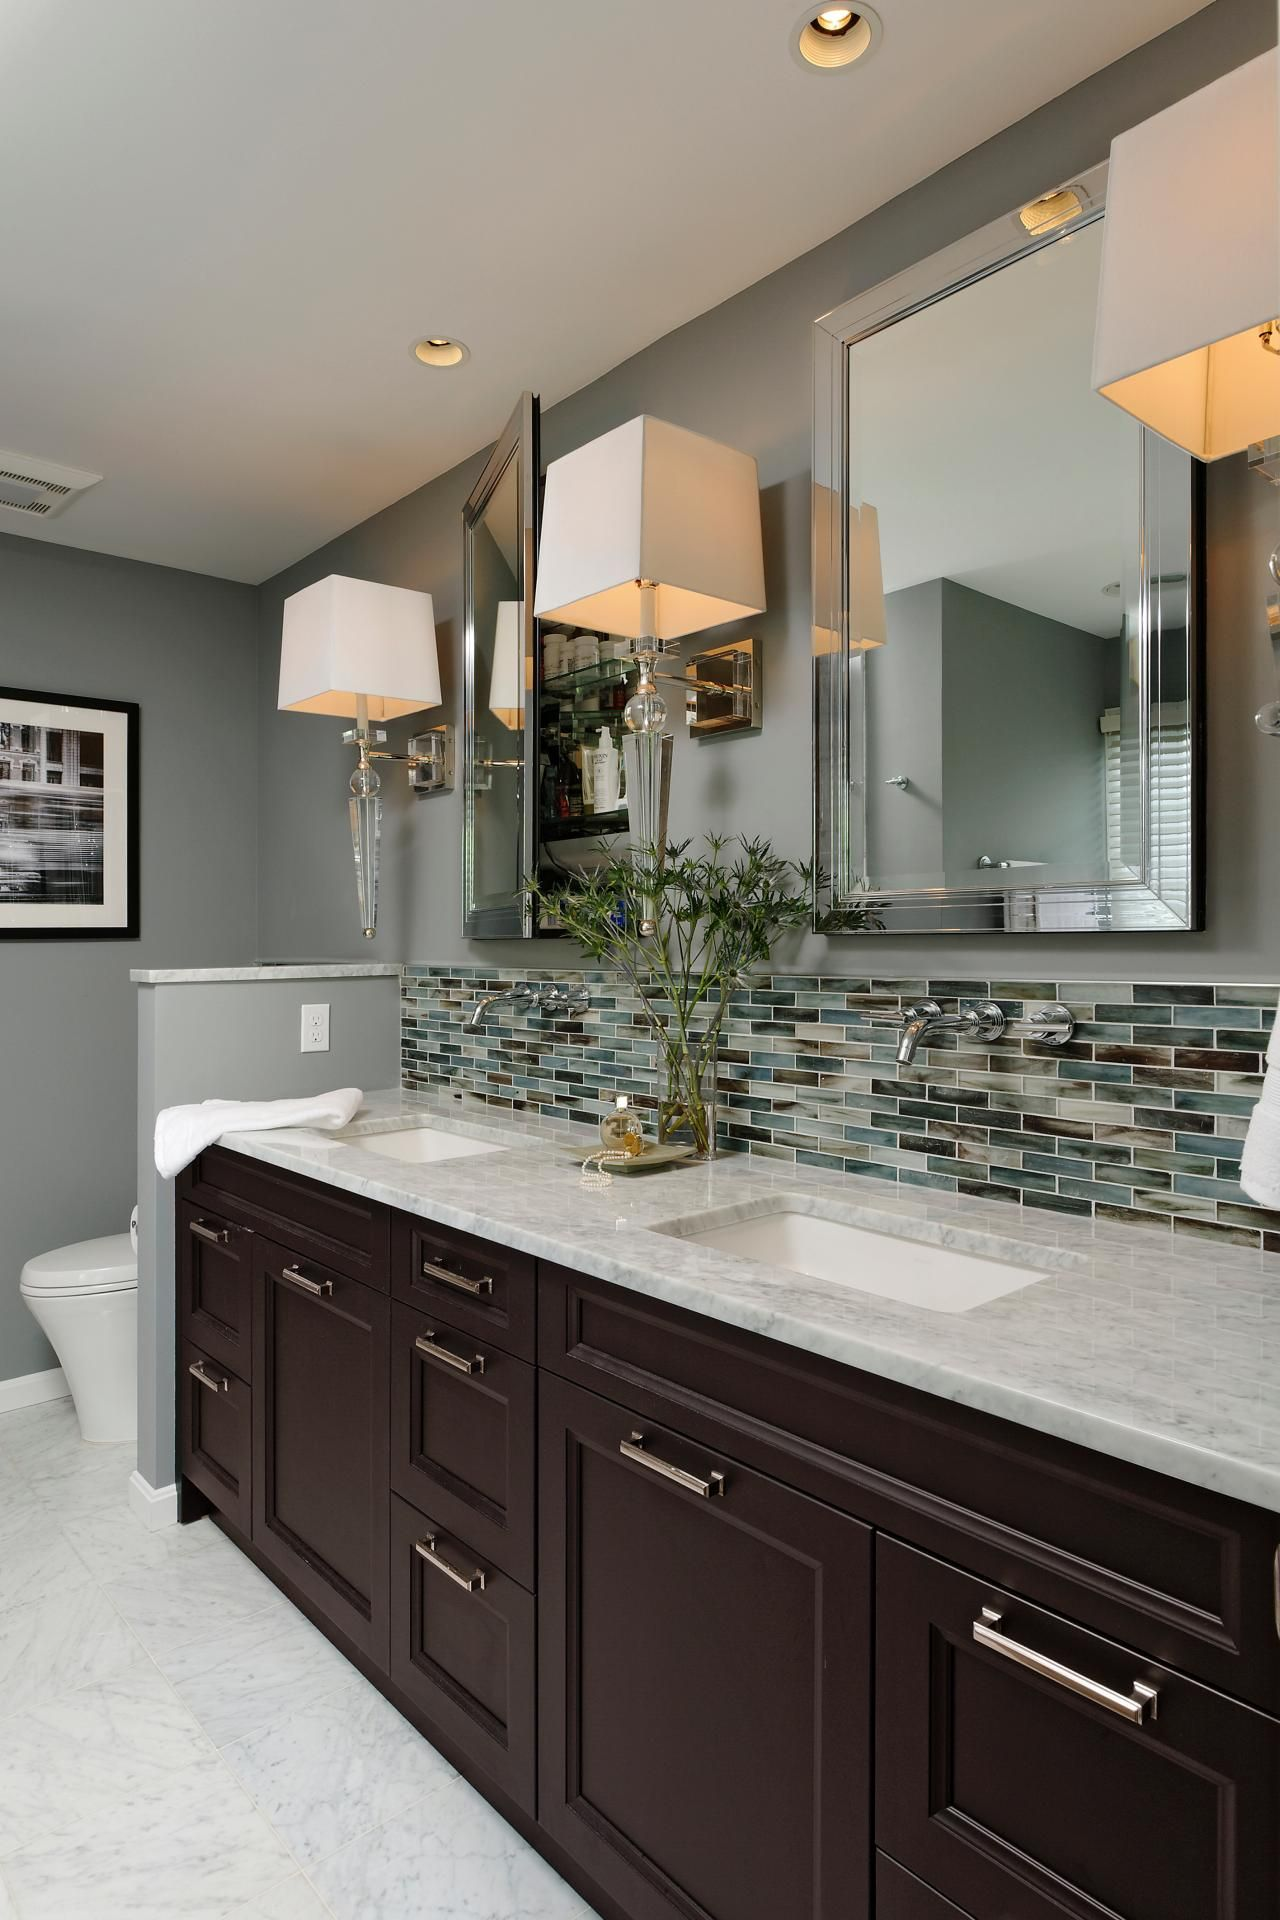 Bathroom Counter And Backsplash : This gray contemporary bathroom features a double vanity